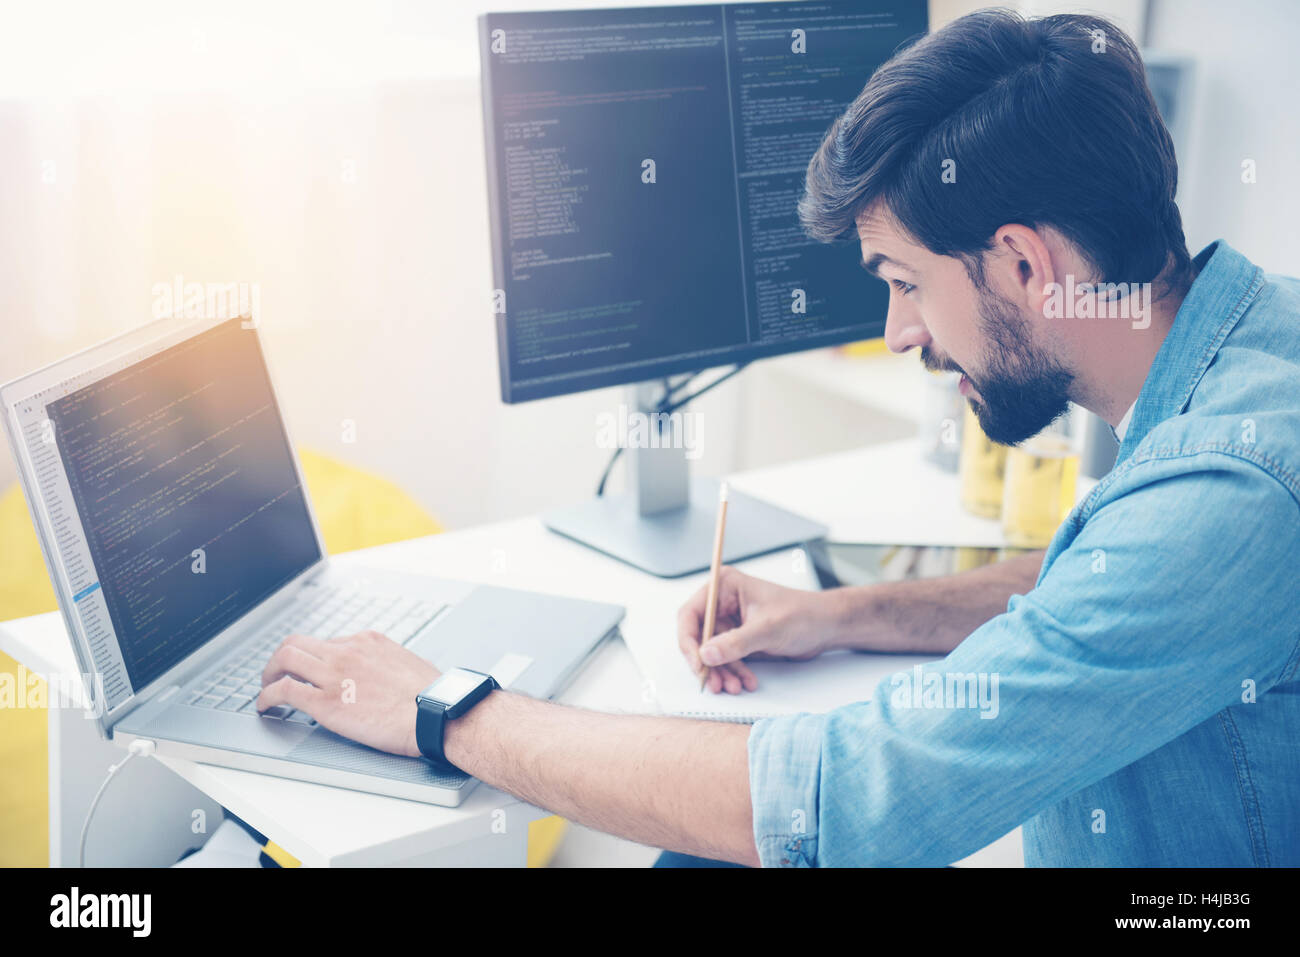 Concentrated man coding on a laptop - Stock Image